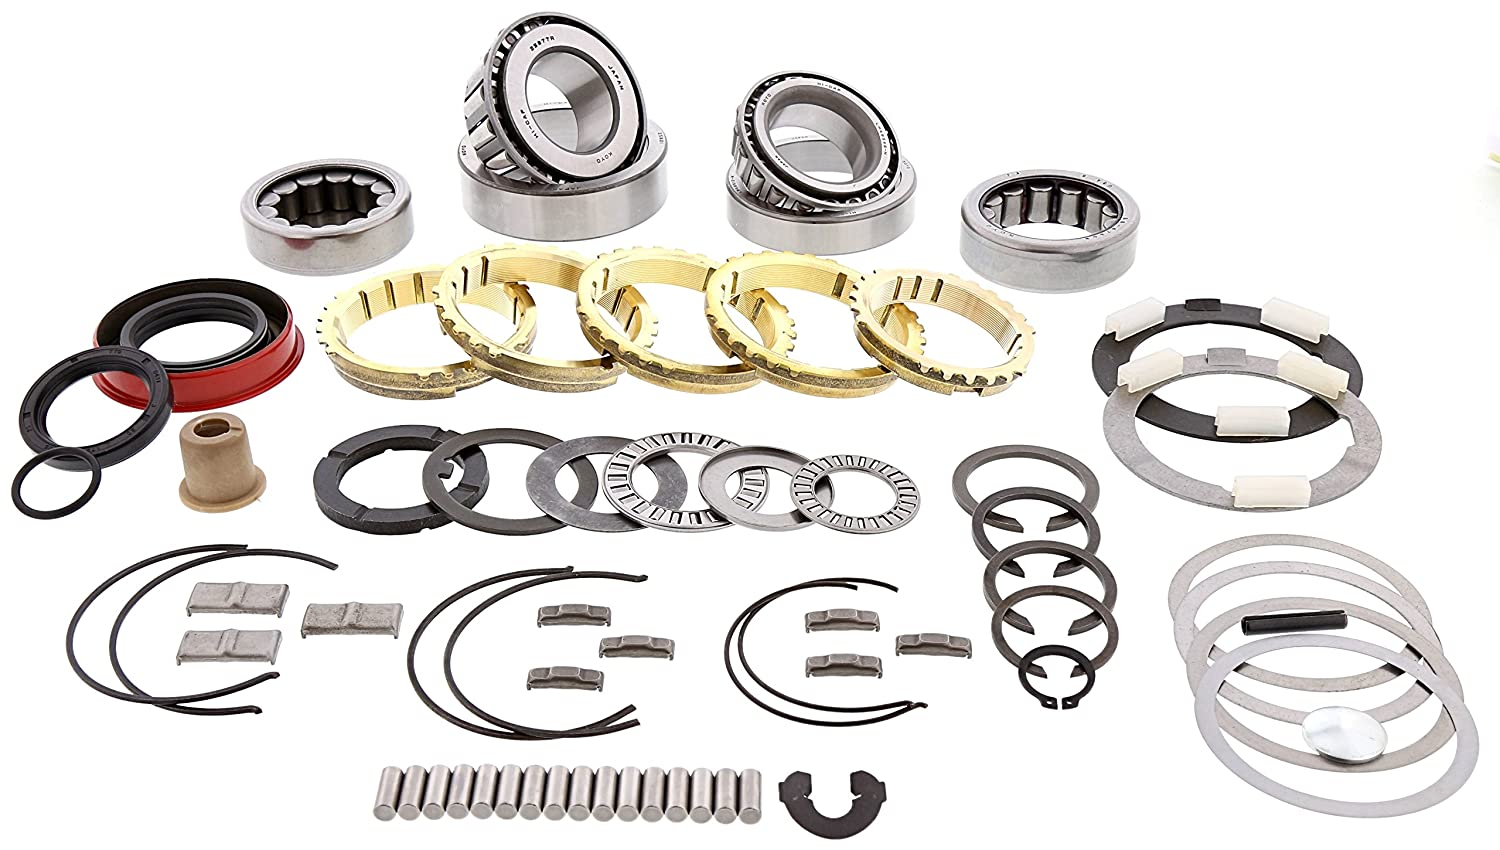 T5 Non World Class 5 Speed Transmission Rebuild Bearing Kit Deluxe GM Chevy Ford Transparts Warehouse